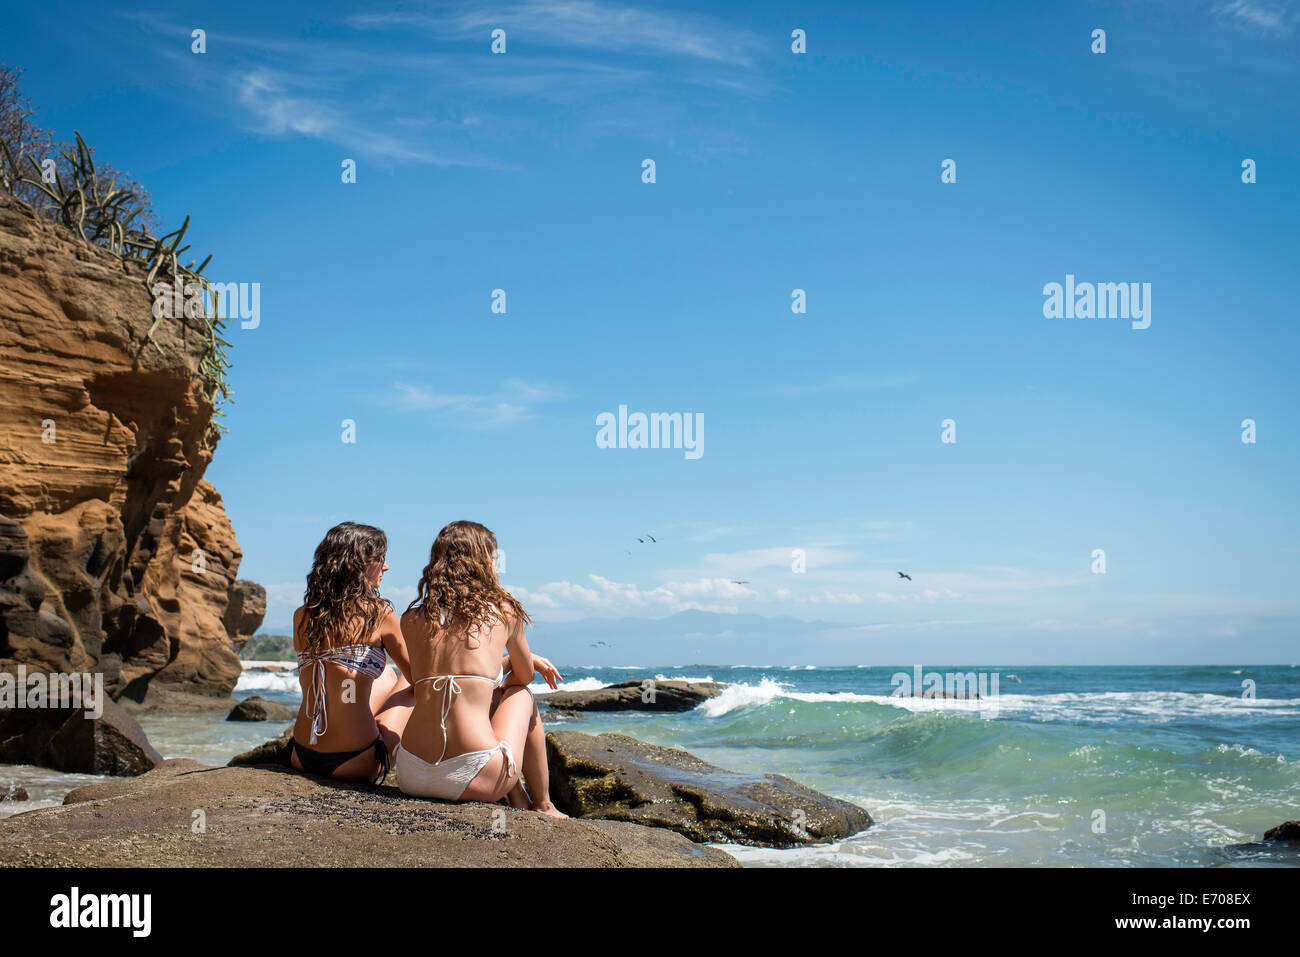 Two young women sitting on rocks, looking out to ocean - Stock Image